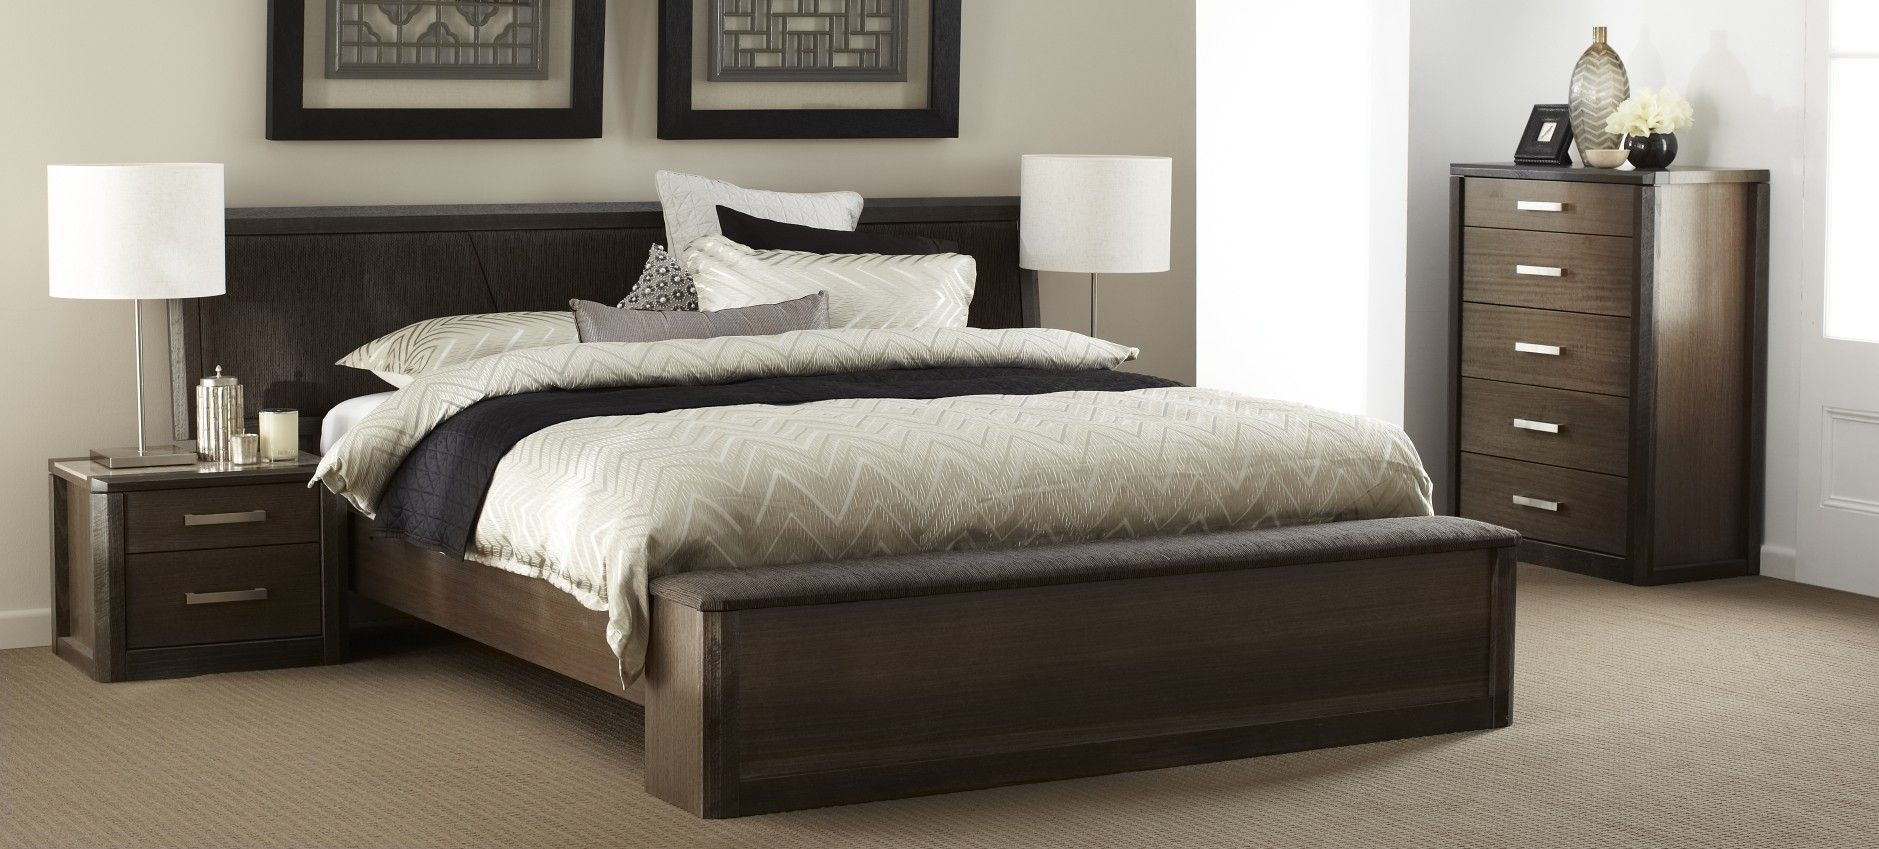 Marble Top Bedroom Furniture Maitland Dark Timber And Upholstery Bedroom Furniture Suite With